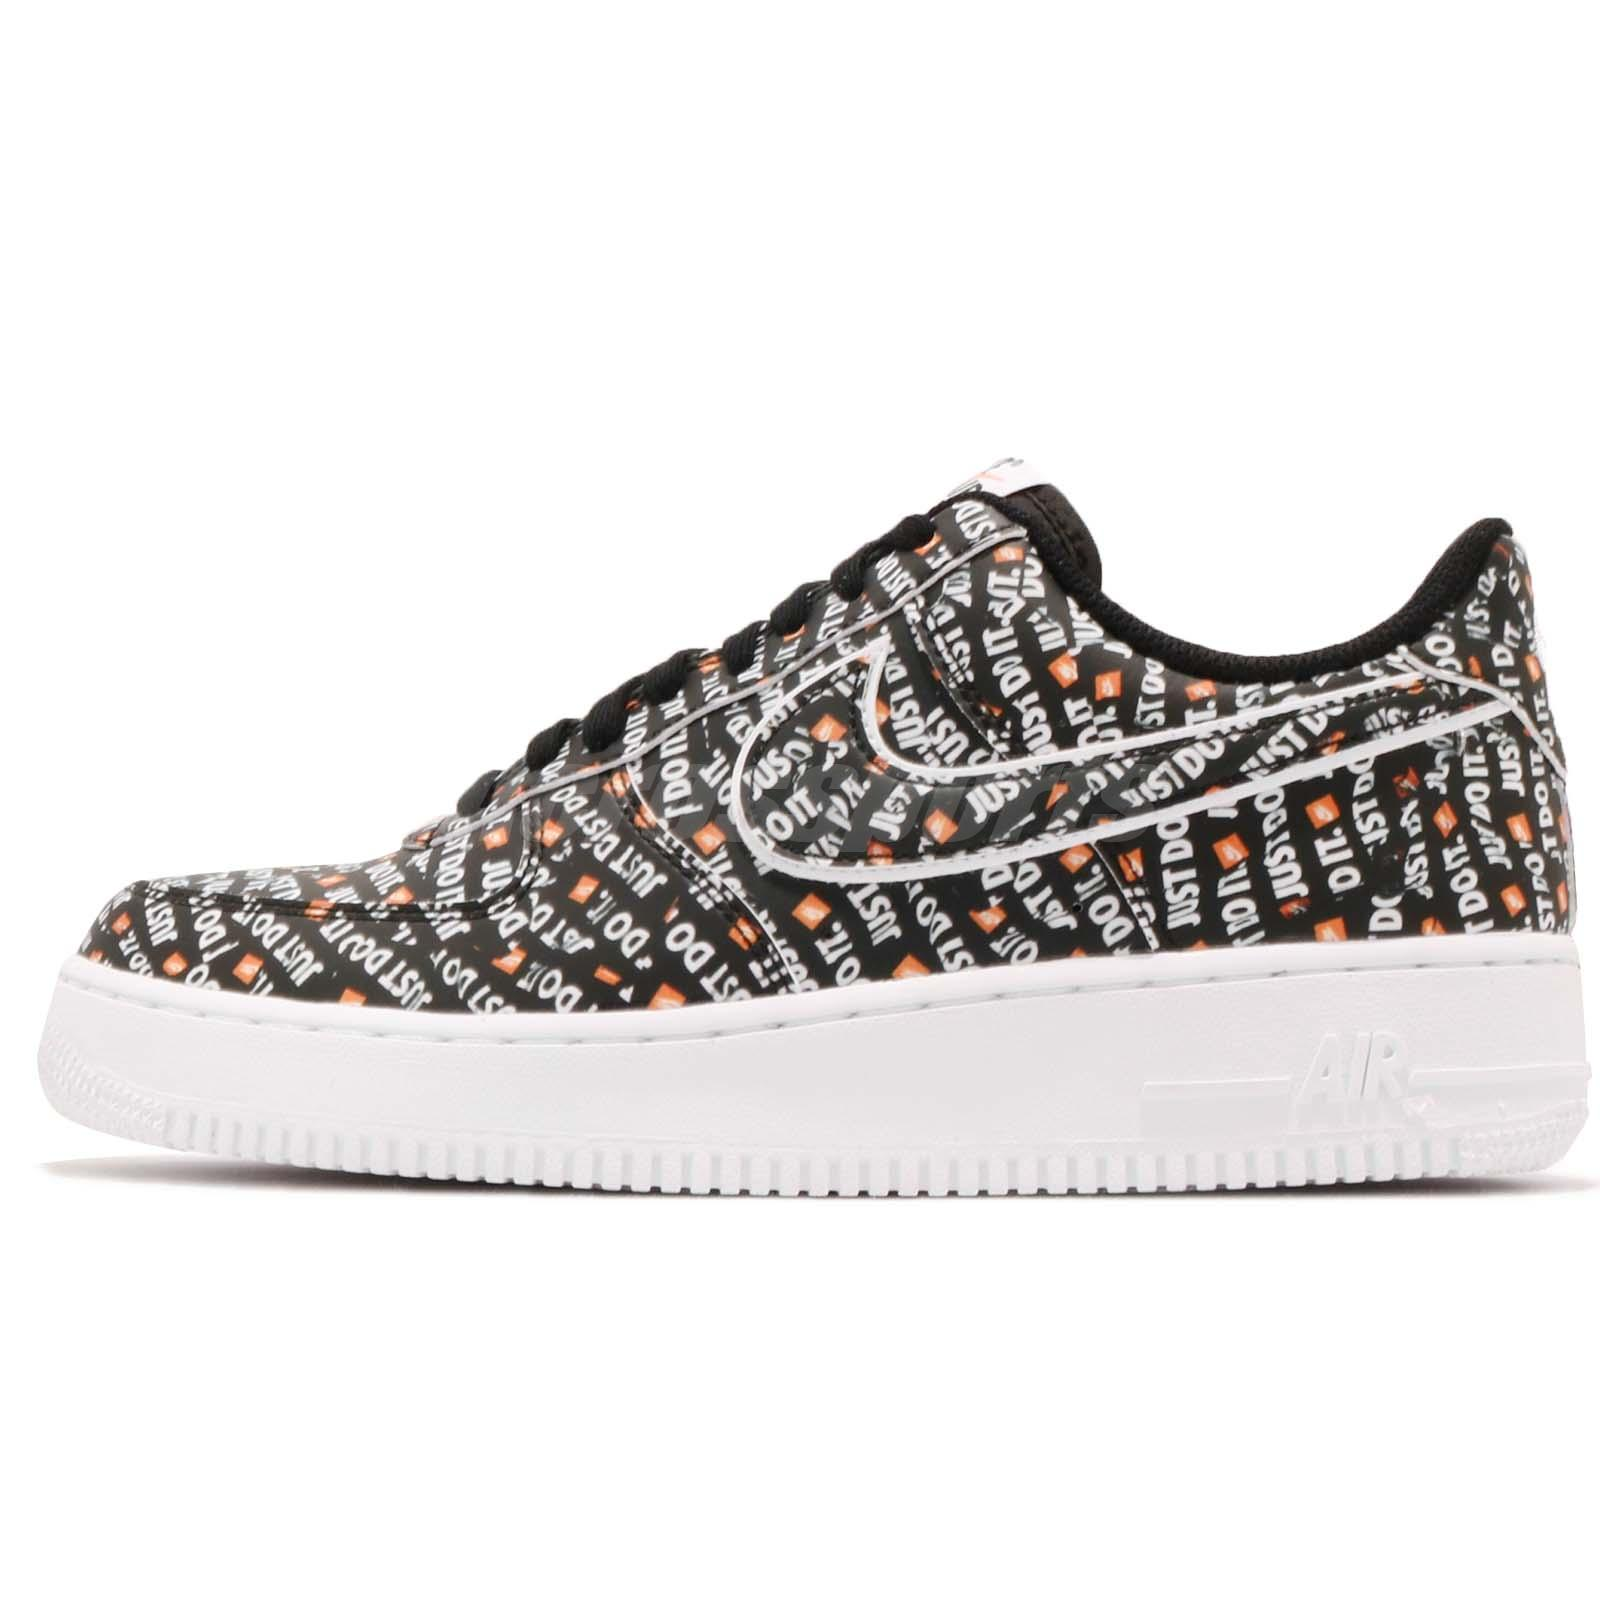 finest selection 6e9cf ecba3 Nike Air Force 1 07 LV8 JDI Just Do It Black White Mens AF1 Sneakers  AO6296-001